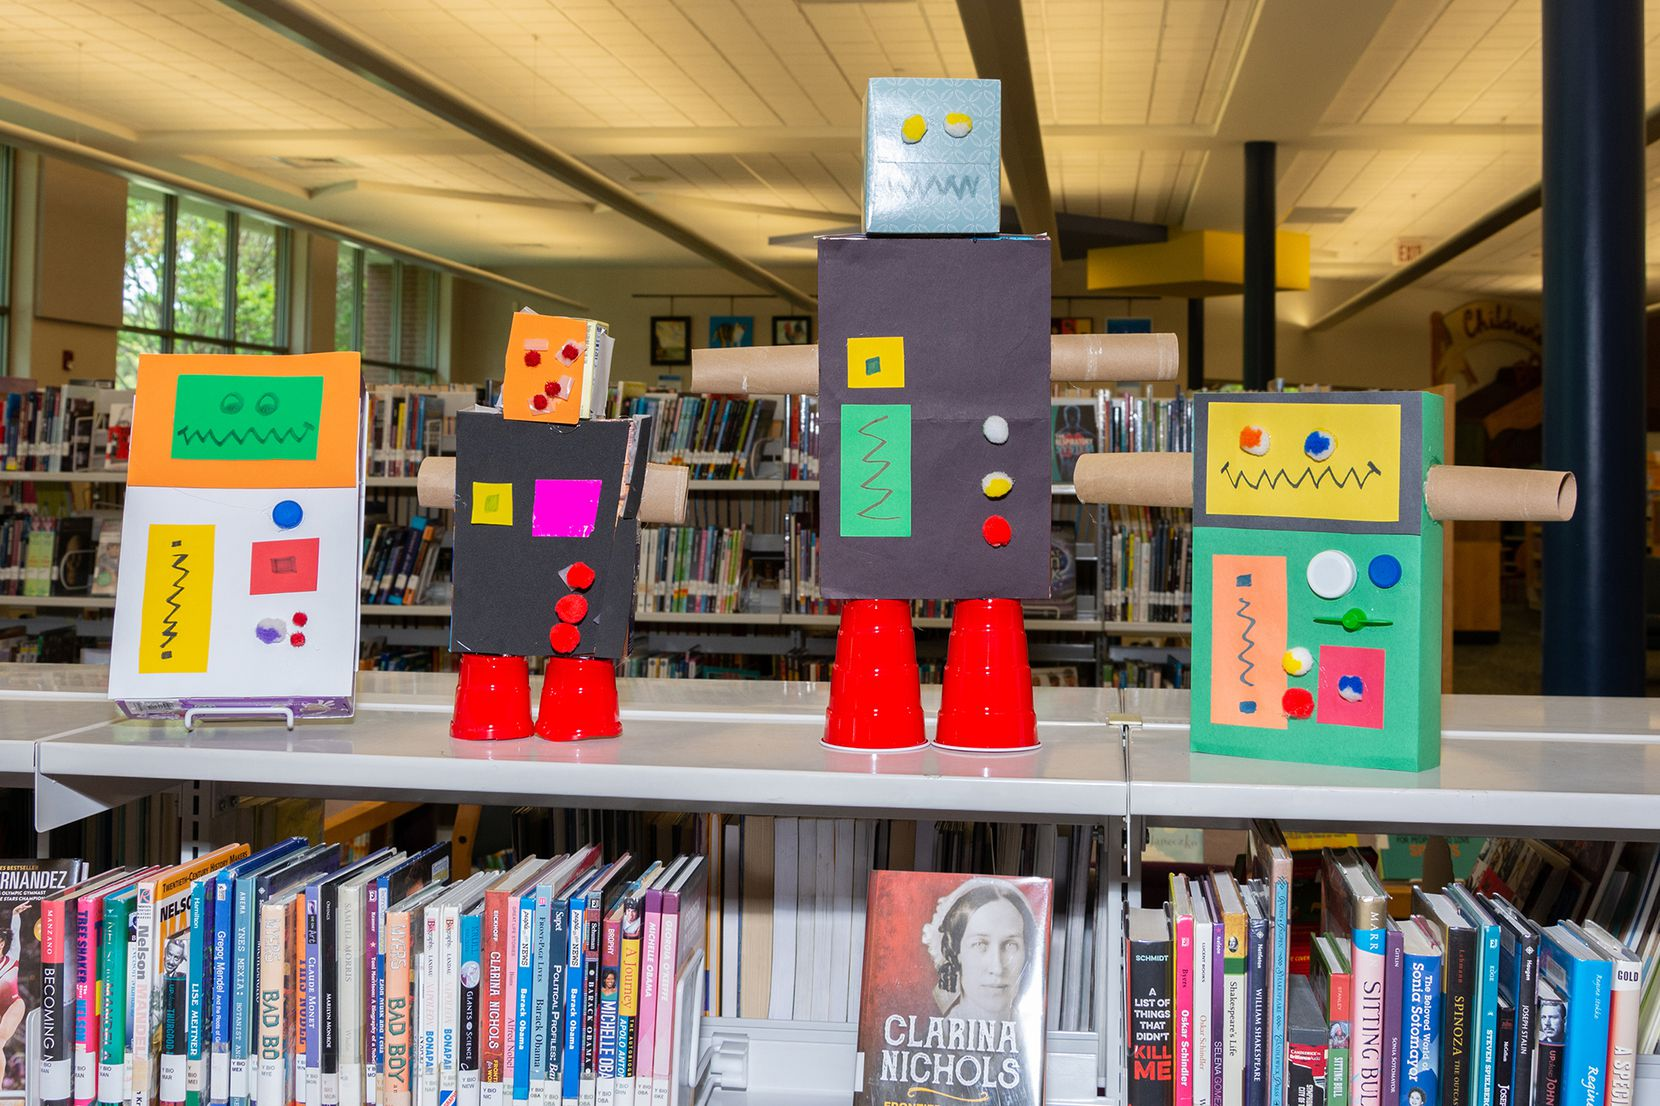 Plano Public Library librarians showed how to make a robot bank for Upcycled Engineering during a virtual program.